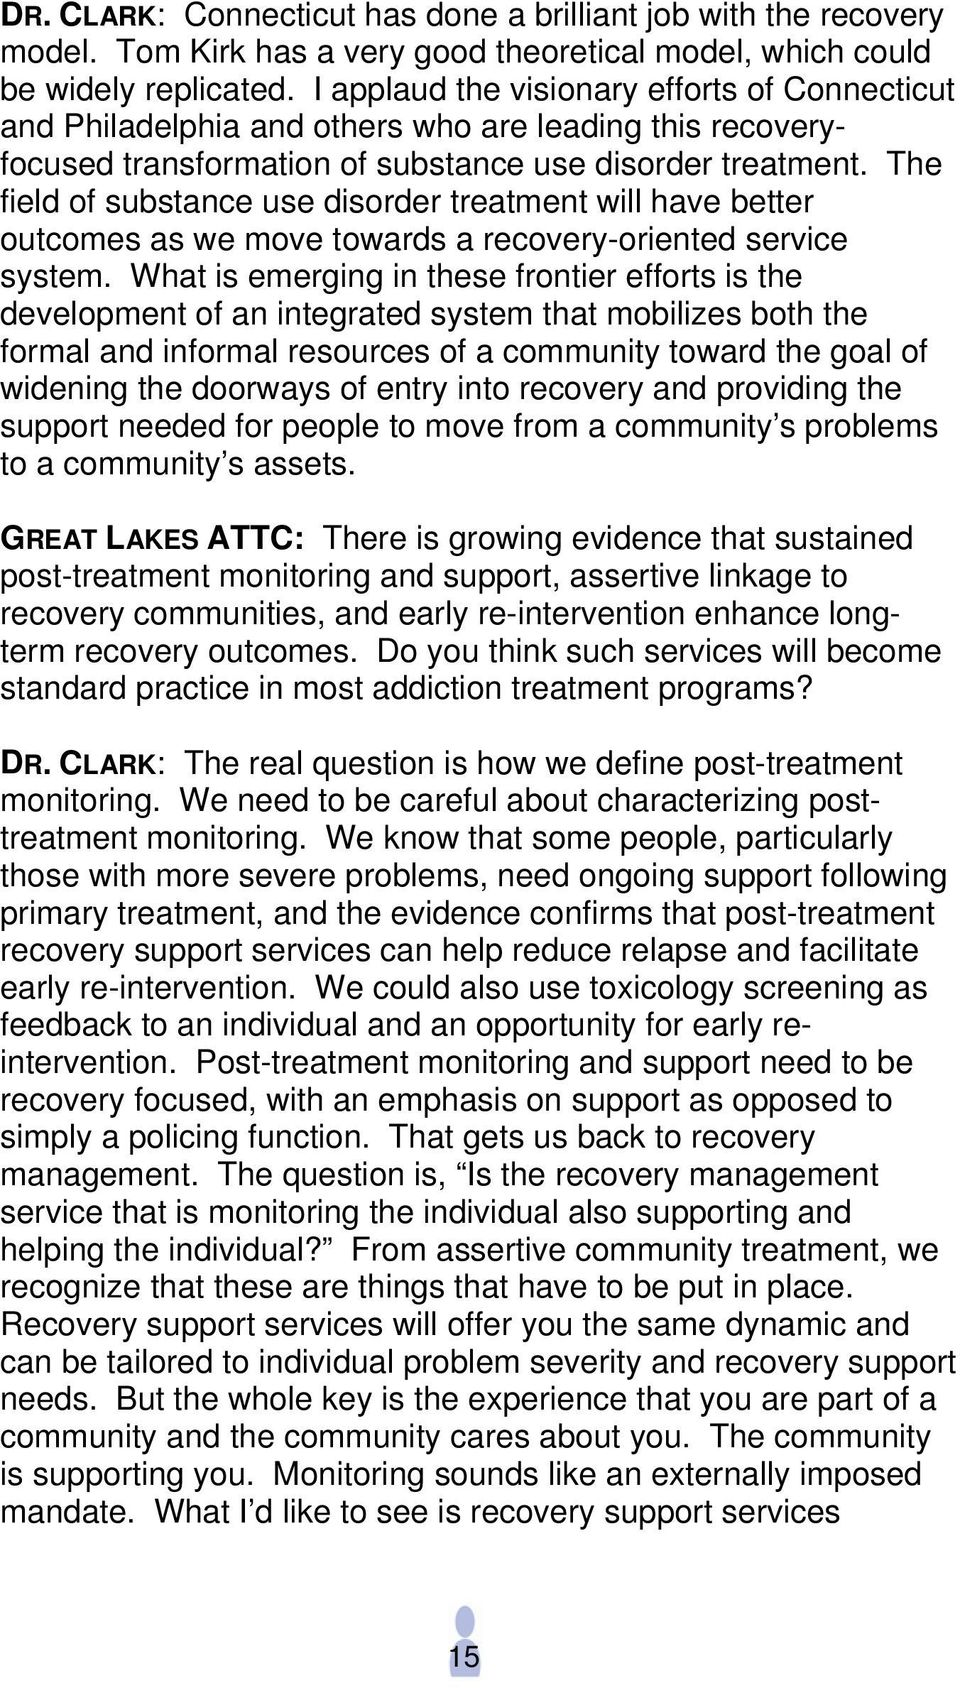 The field of substance use disorder treatment will have better outcomes as we move towards a recovery-oriented service system.